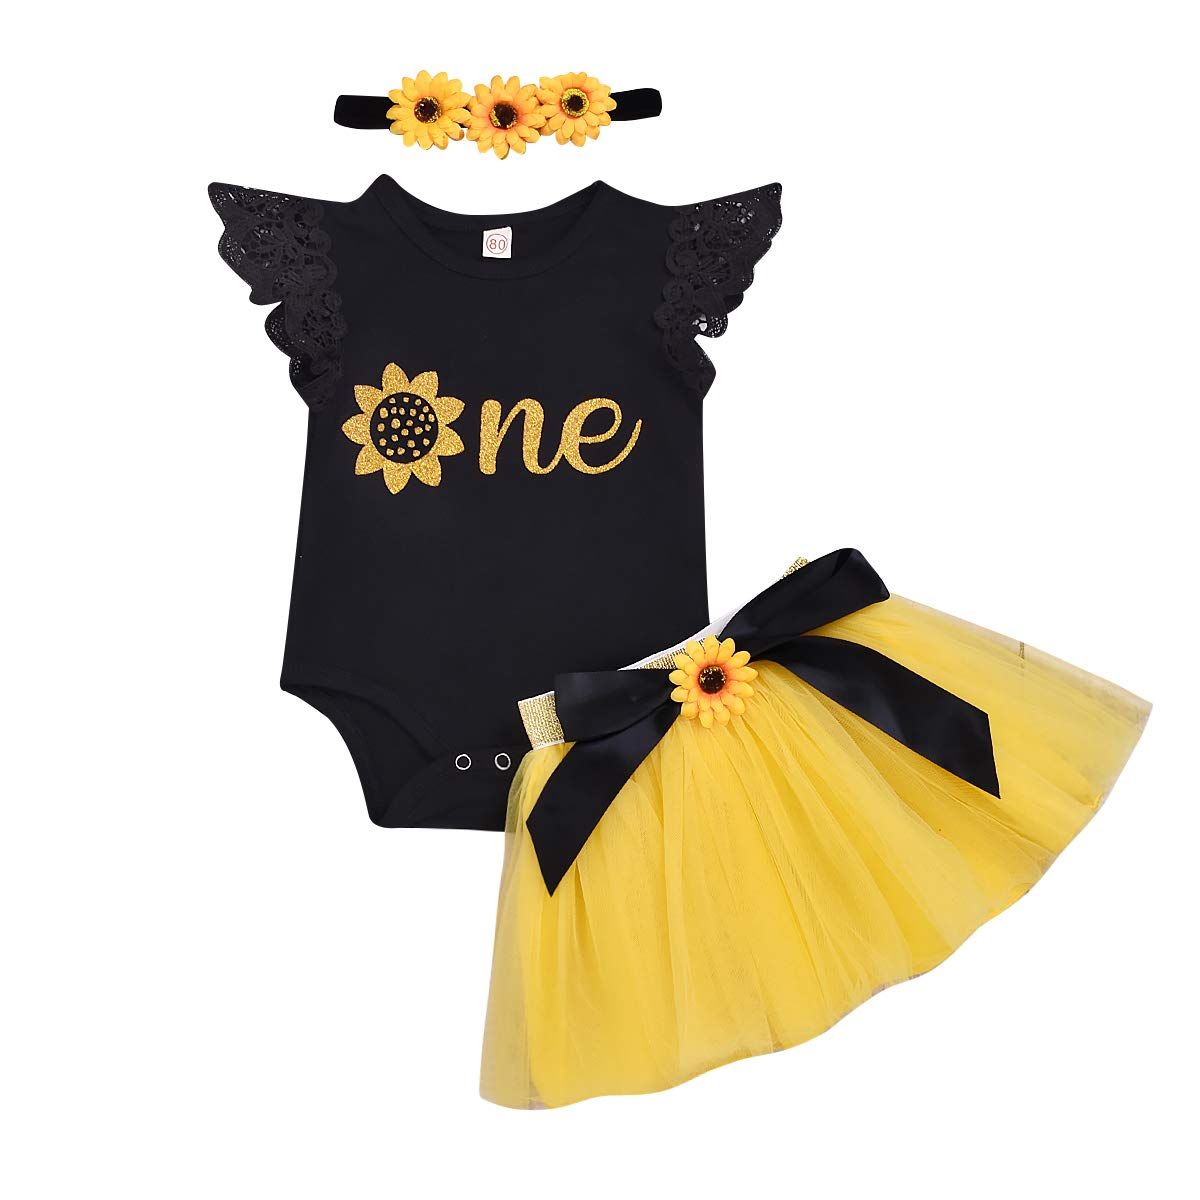 Newborn Infant Baby Girl Clothes My 1st Birthday Ruffle Romper Tops Tutu Skirt Princess Cake Smash Party Dress Outfit